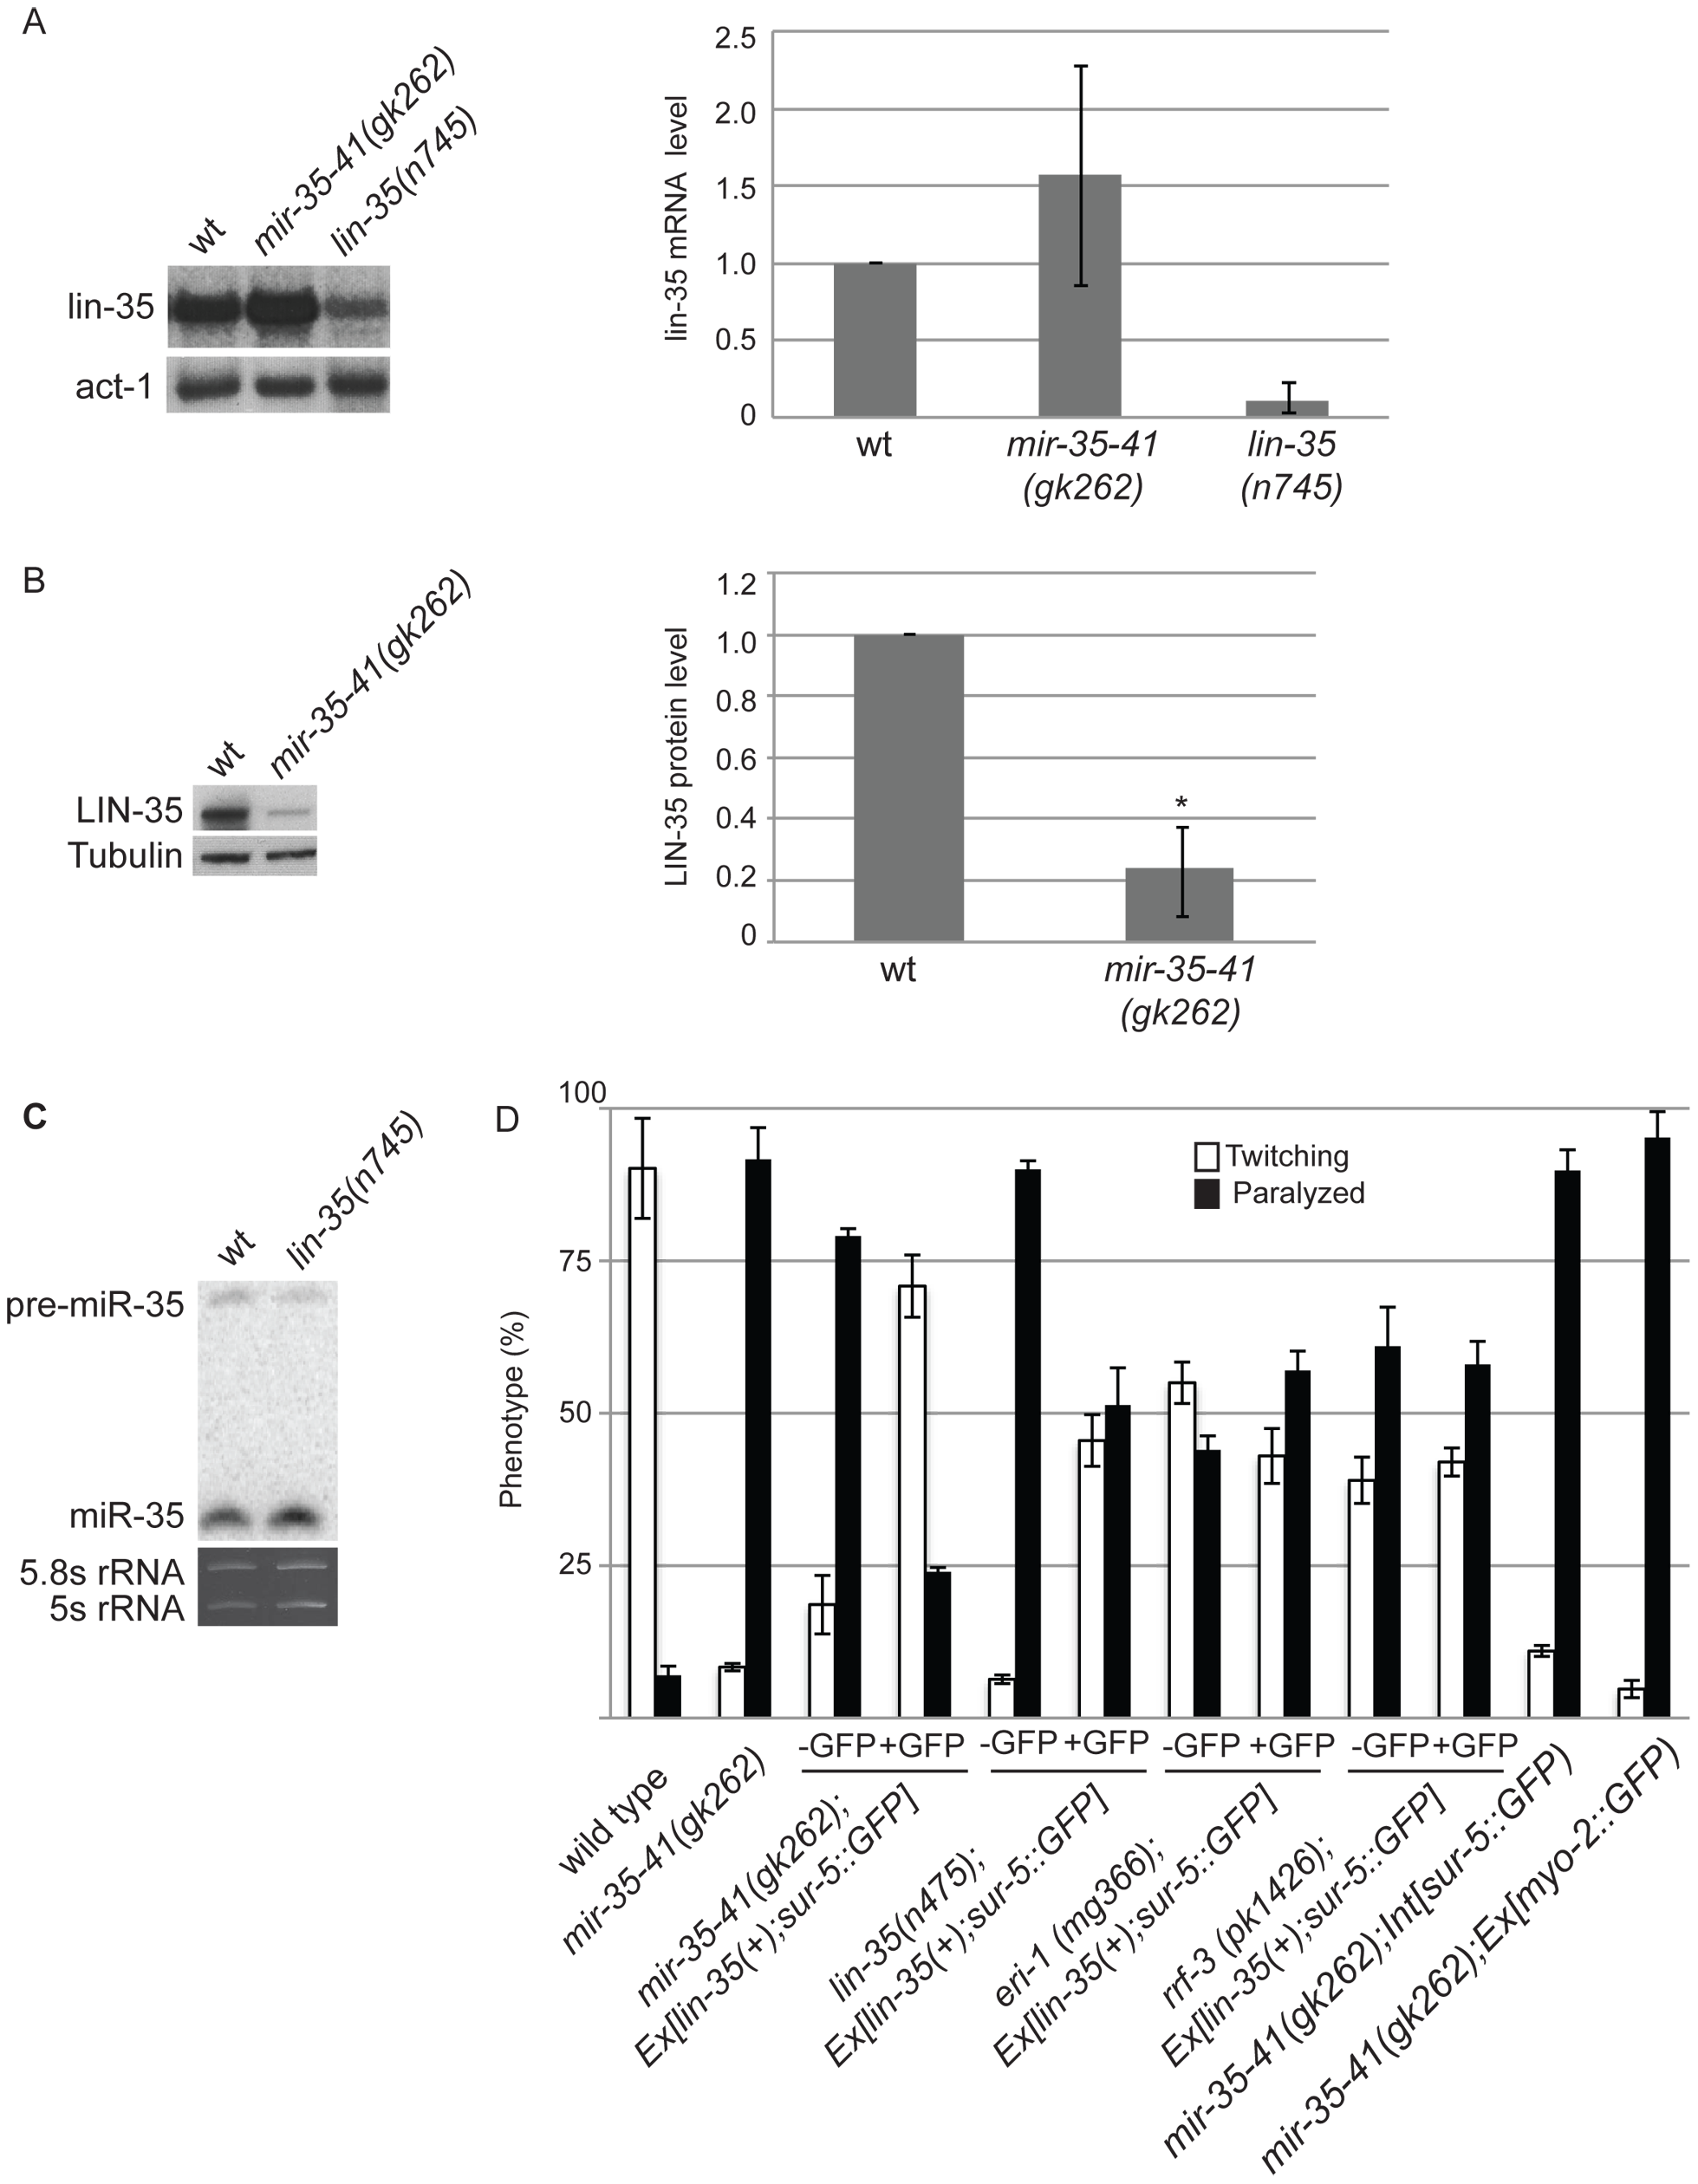 Decreased LIN-35/Rb contributes to the RNAi hypersensitivity of <i>mir-35-41(gk262)</i> worms.